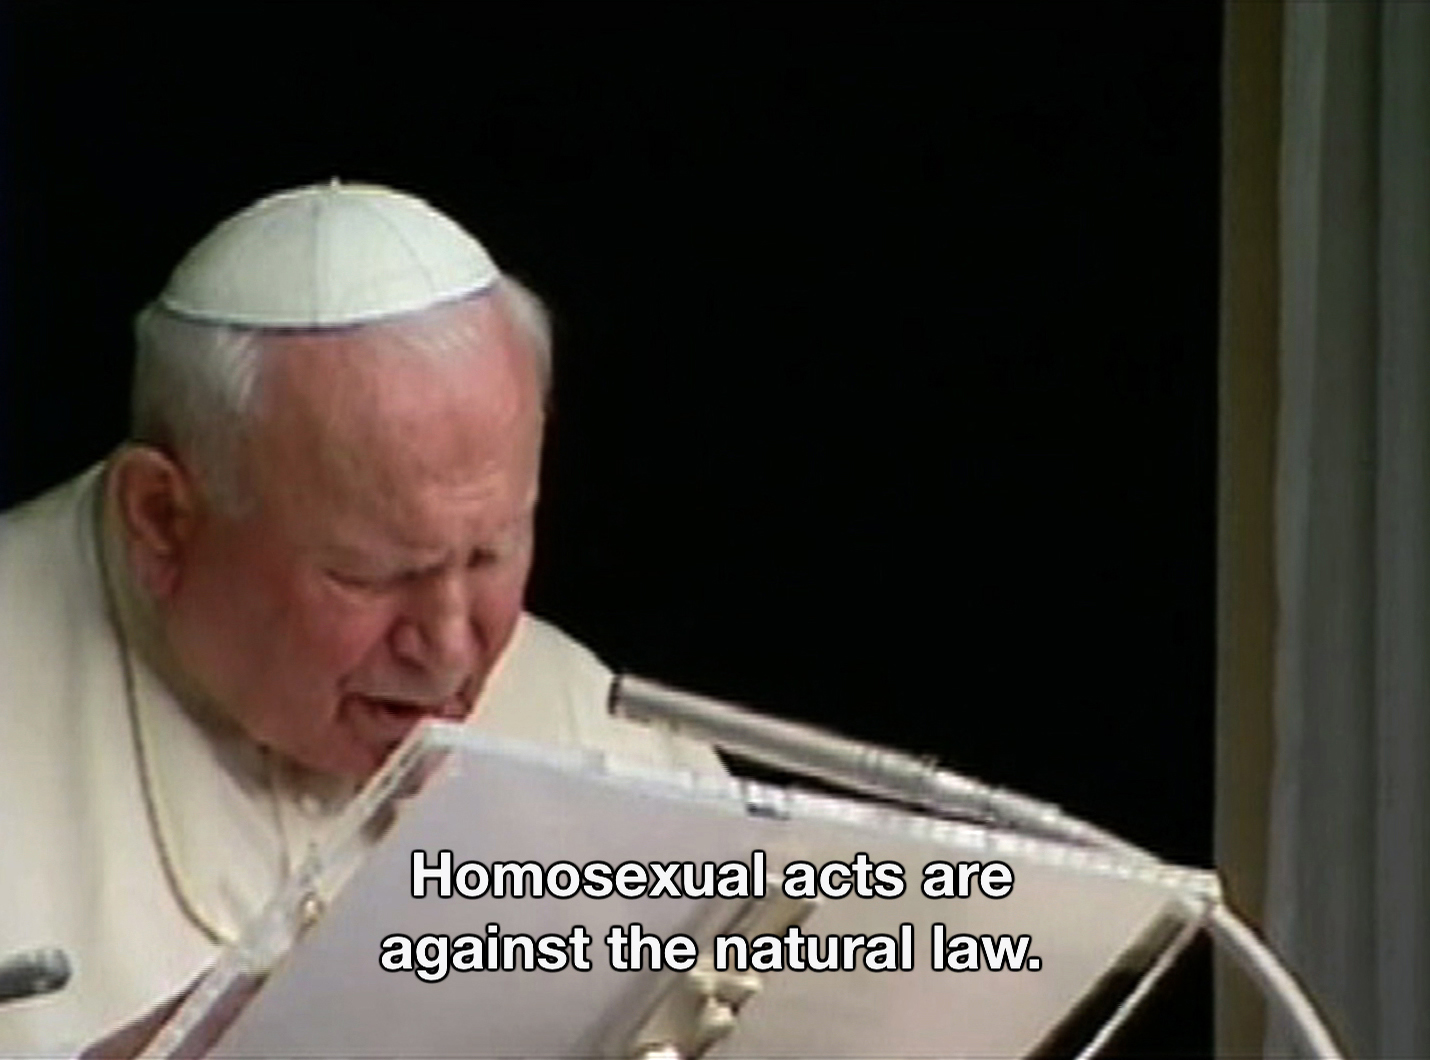 Pope John Paul II speaks